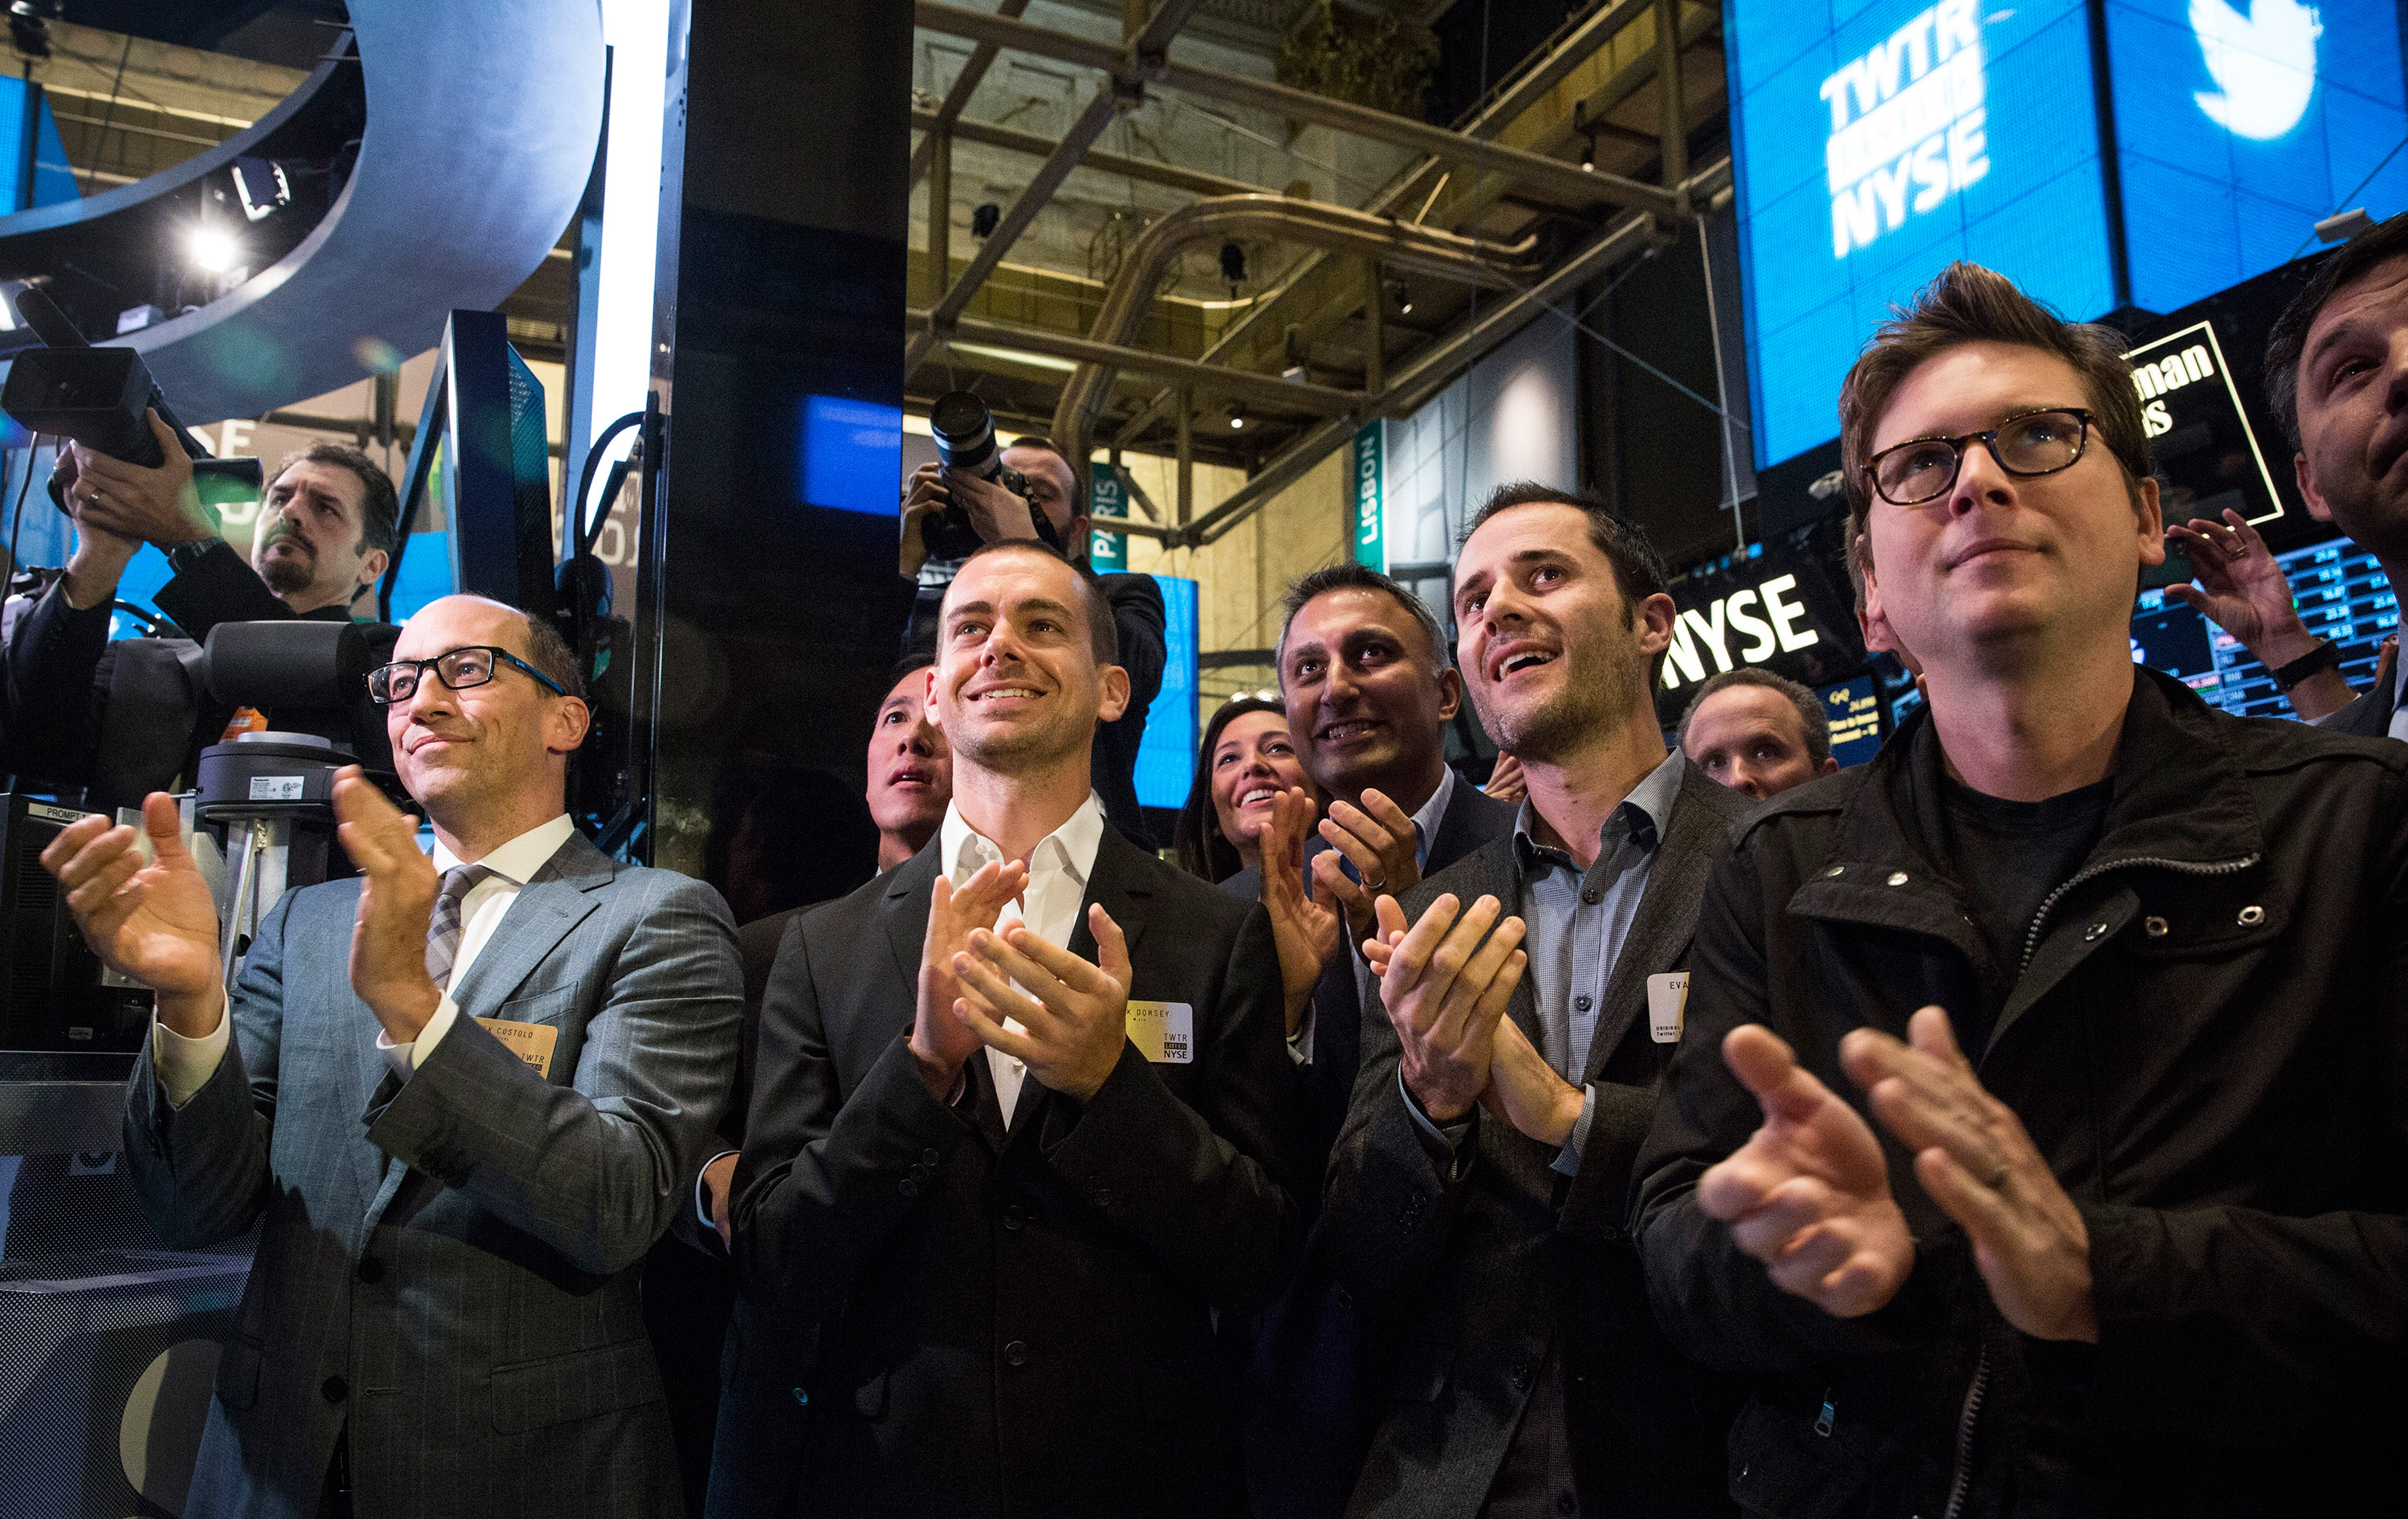 (L-R) Twitter CEO Dick Costolo, Twitter co-founder Jack Dorsey, Twitter co-founder Evan Williams and Twitter co-founder Biz Stone applaud as Twitter rings the opening bell at the New York Stock Exchange (NYSE) while also celebrating the company's IPO on November 7, 2013 in New York City.